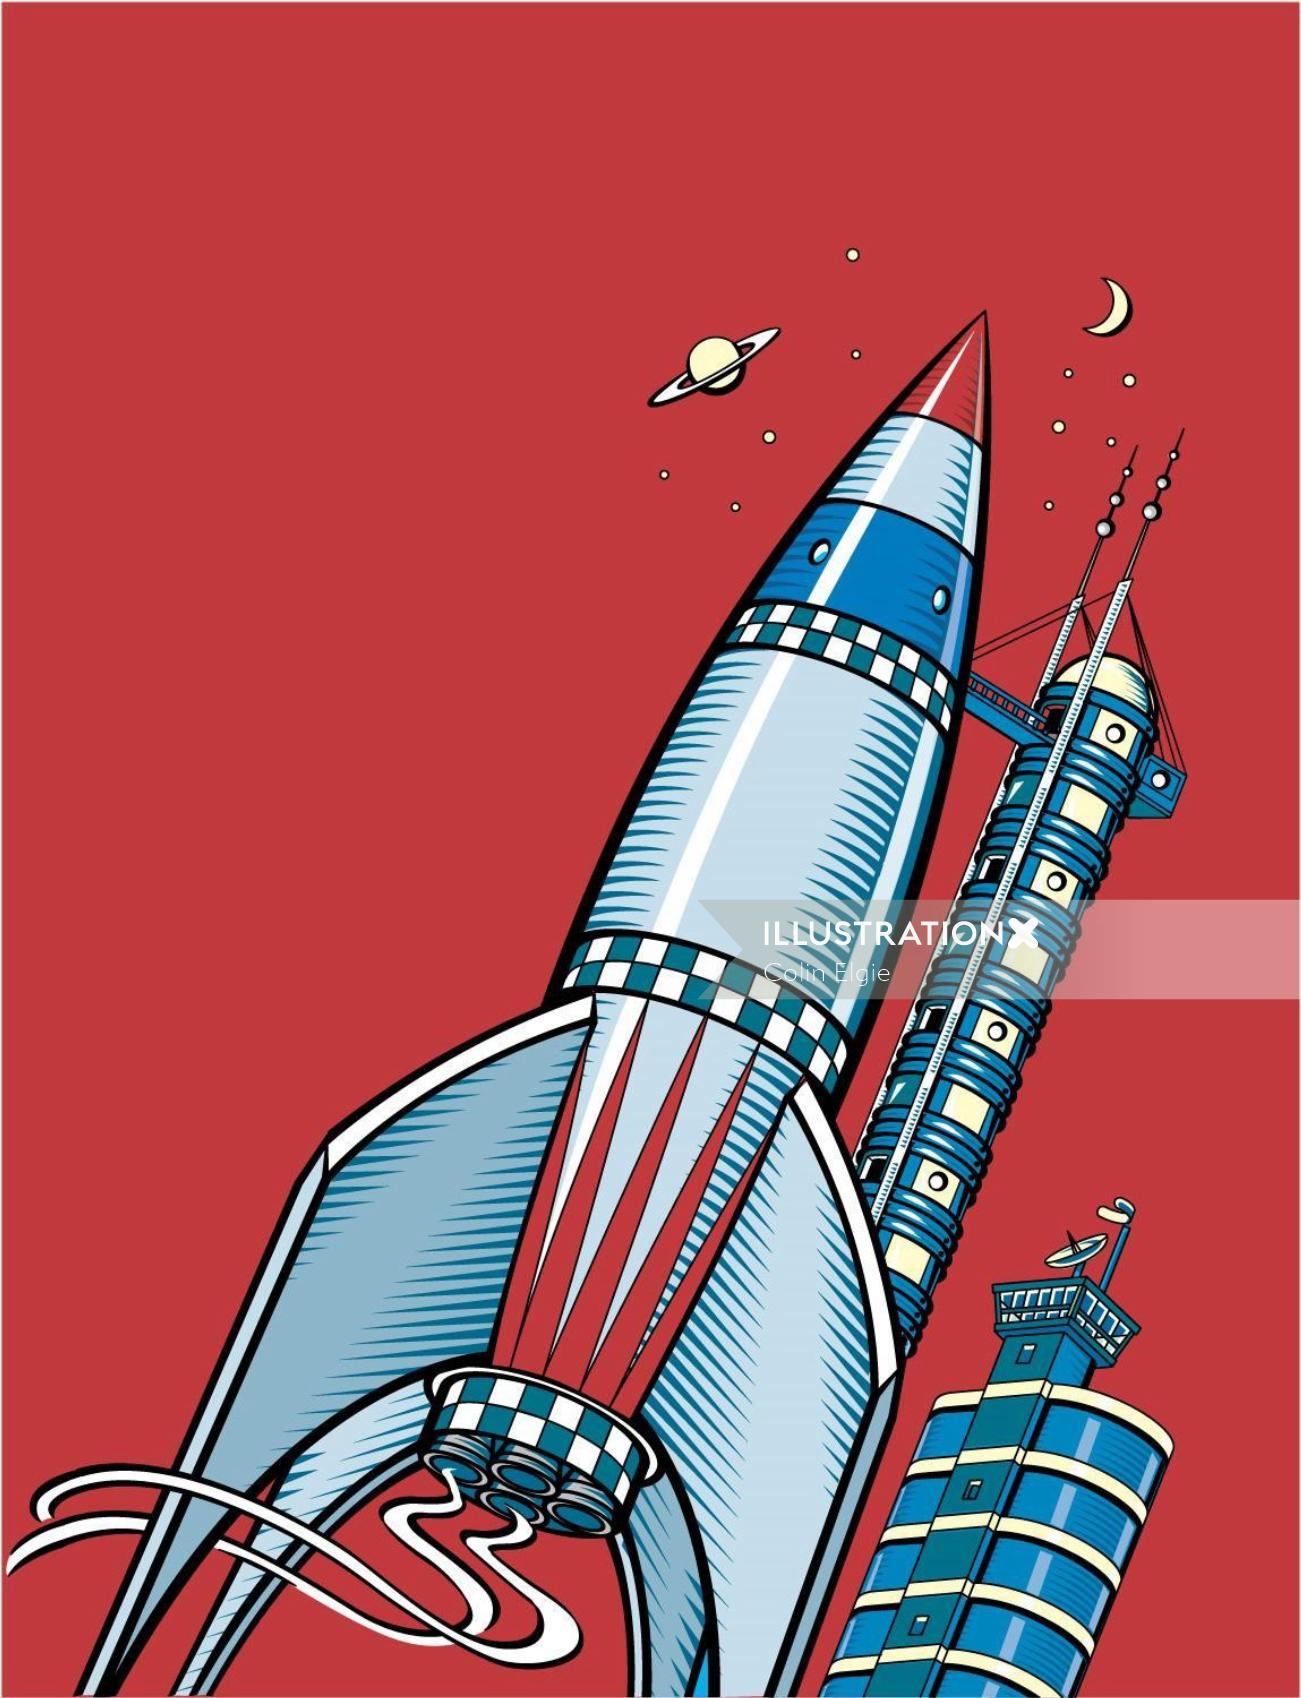 An illustration of a science fiction rocket sits on a launch pad